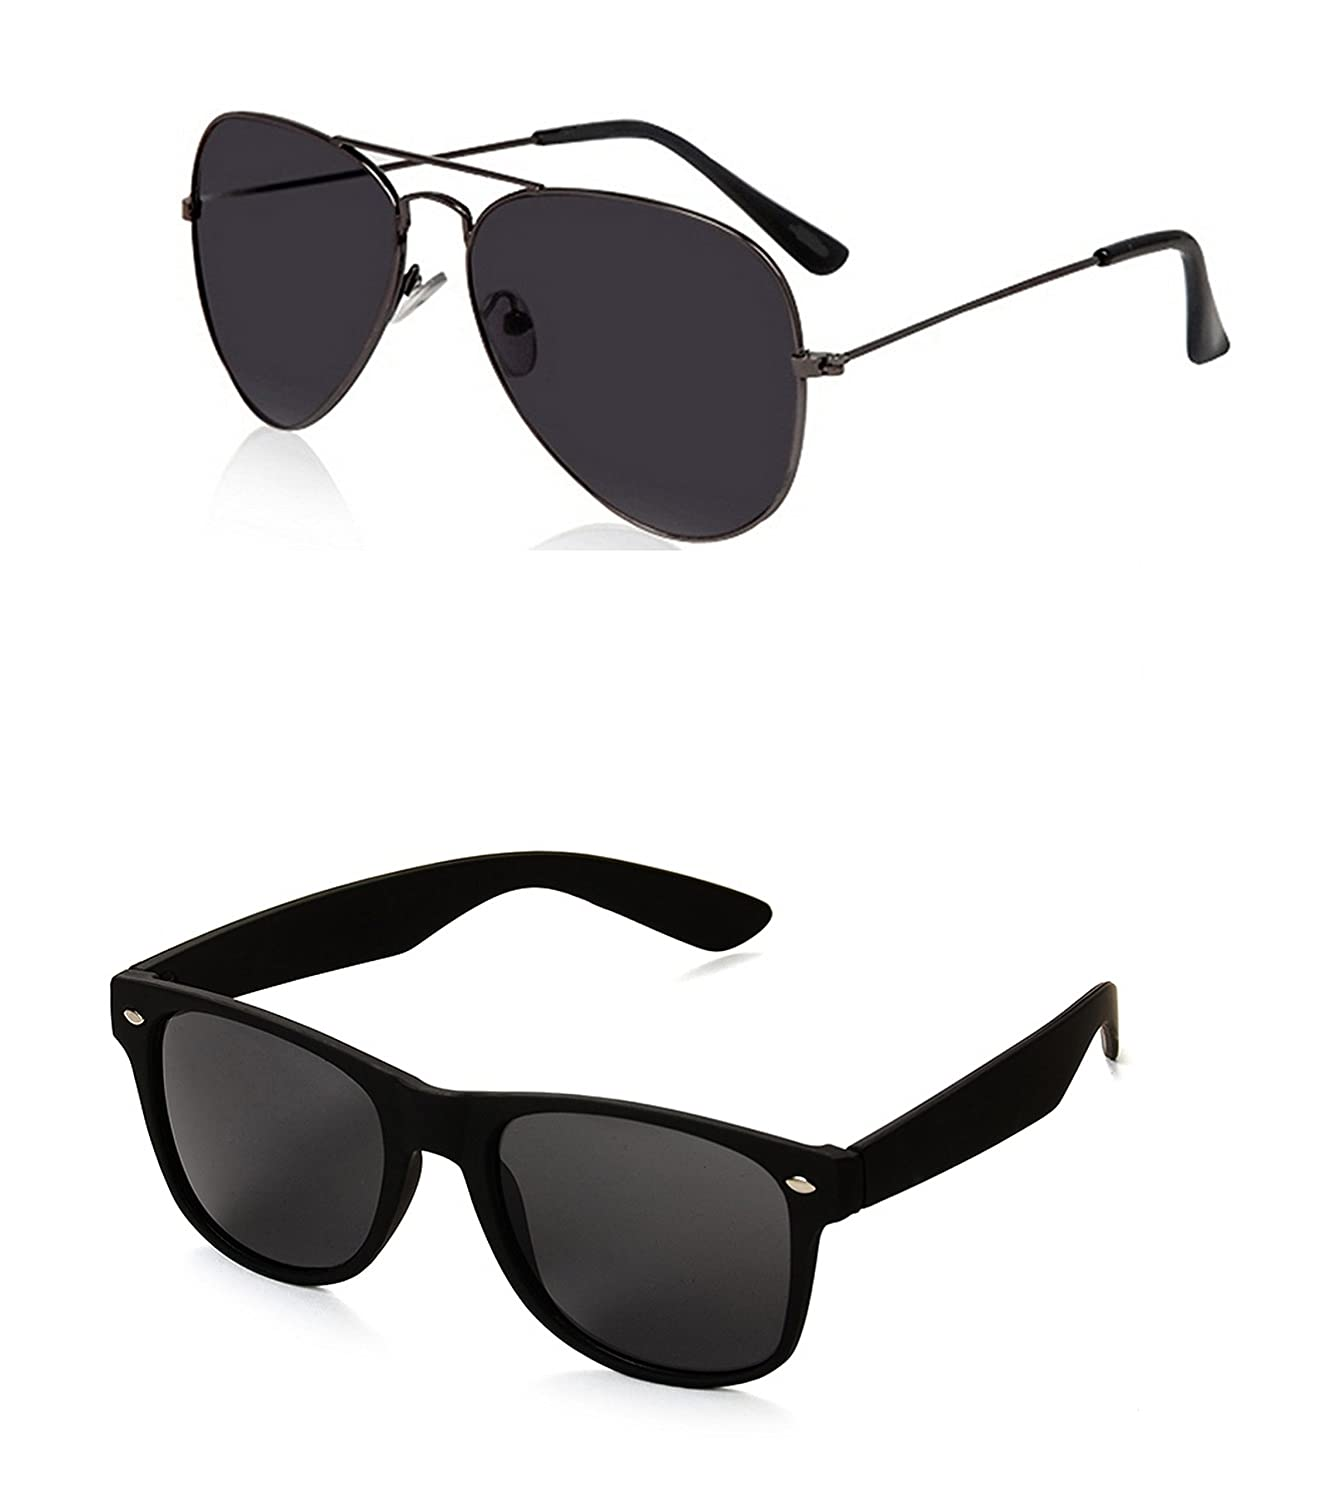 521bd5ce5aa Shades  Buy Sunglasses for Men online at best prices in India ...